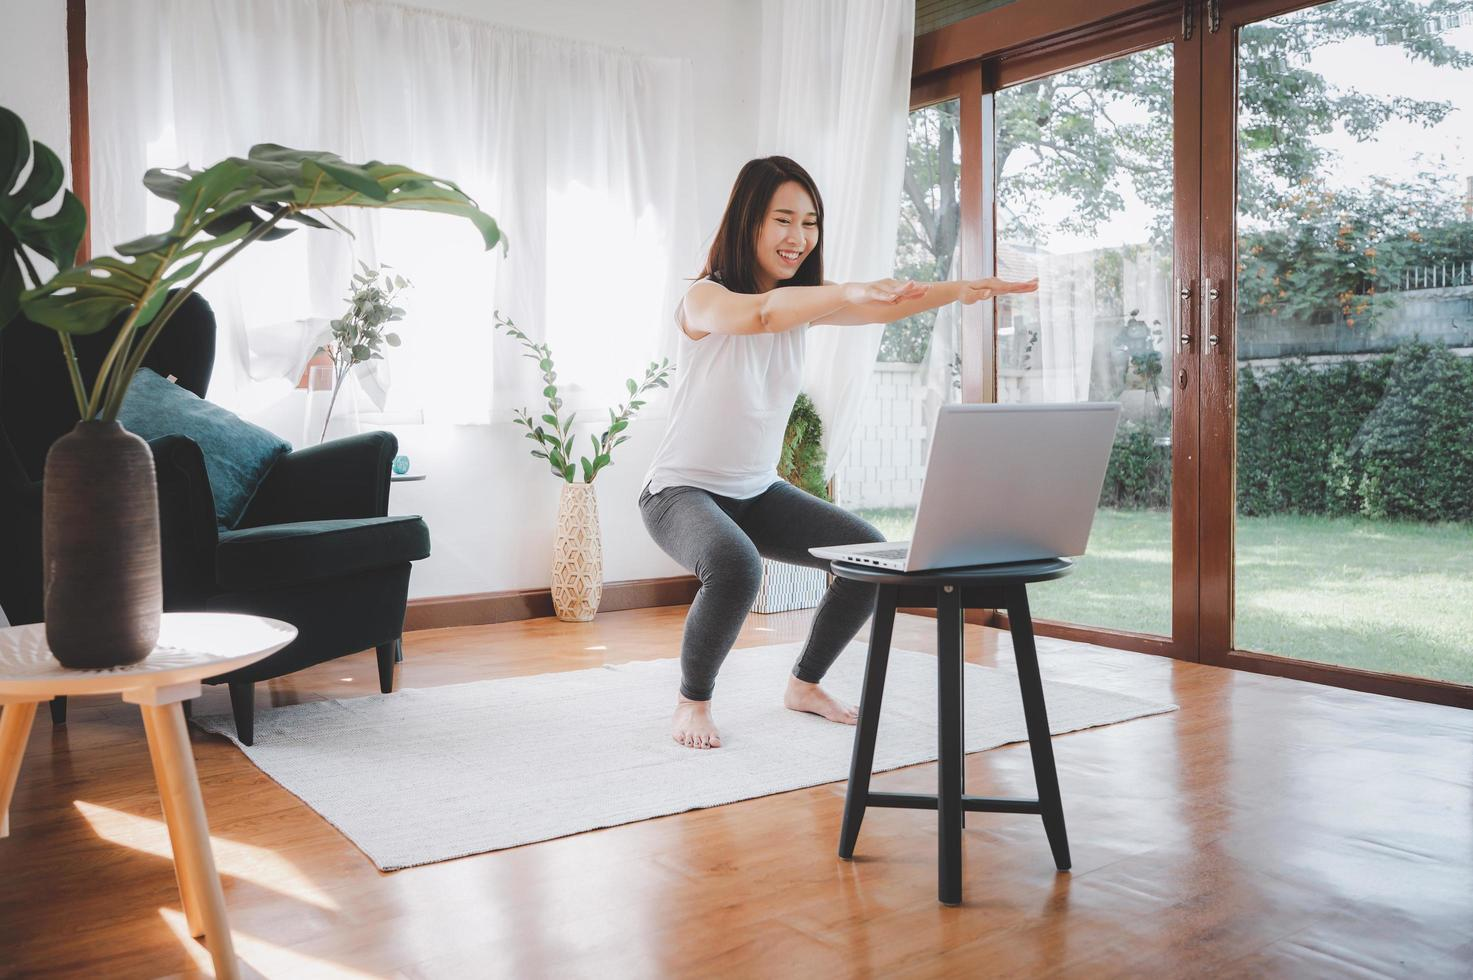 Woman learning online workout excercise class at home from laptop photo